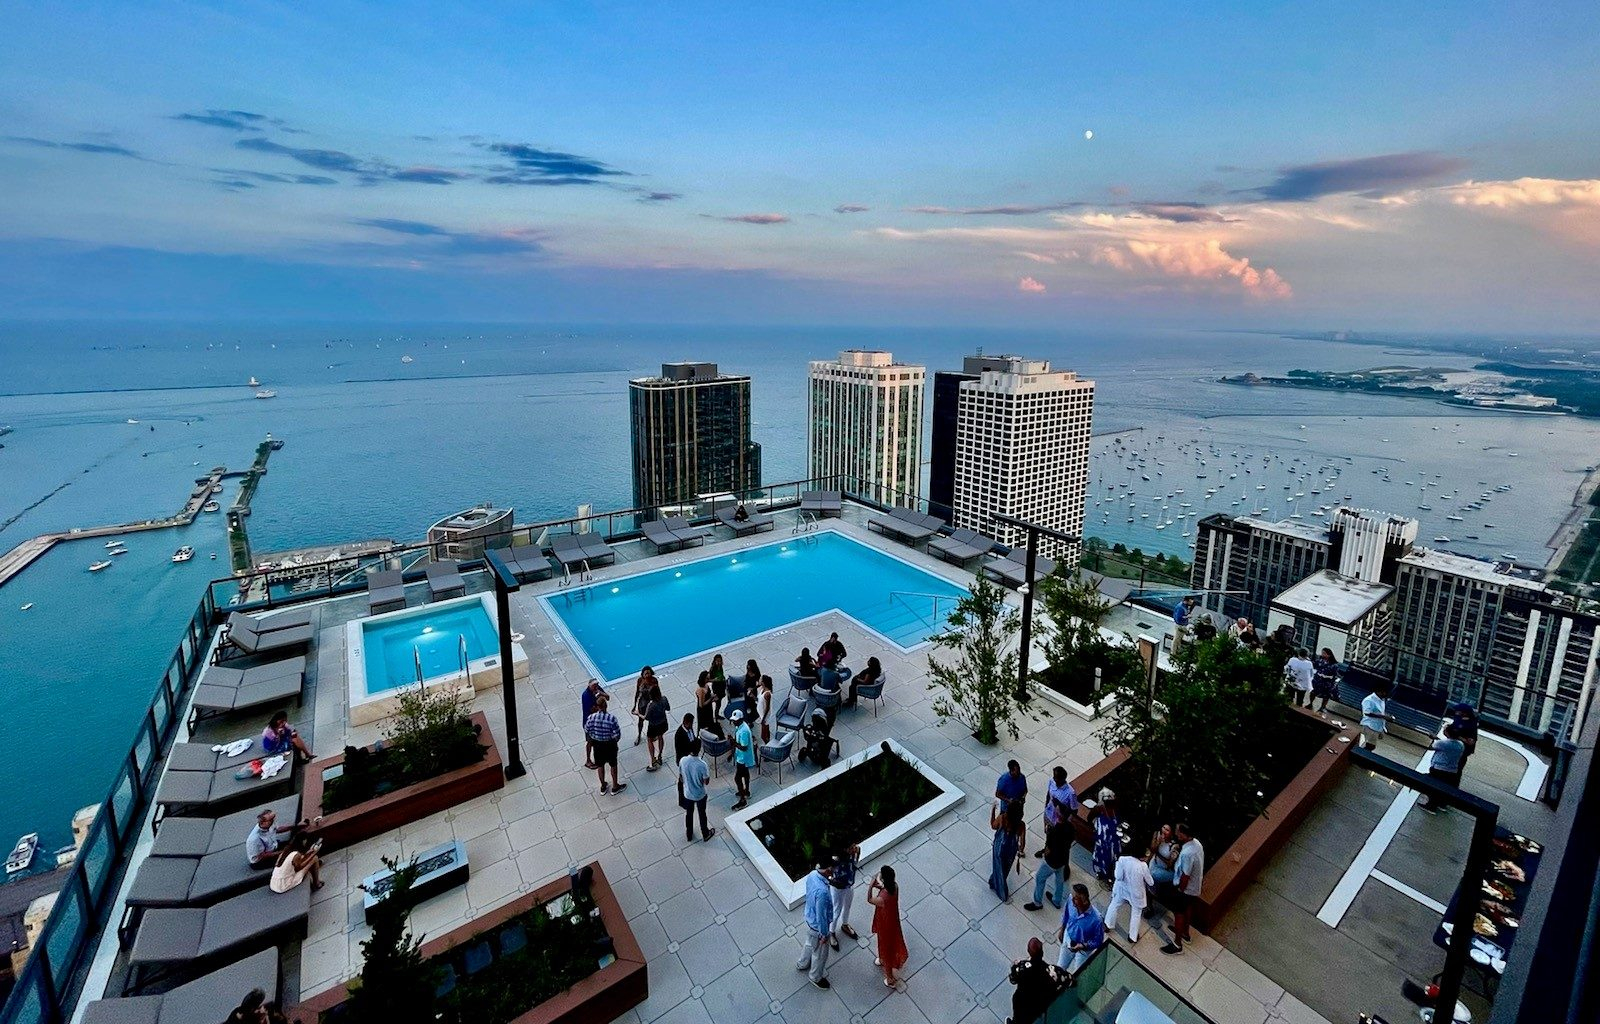 The St. Regis Chicago Offers Poolside Music This Holiday Weekend